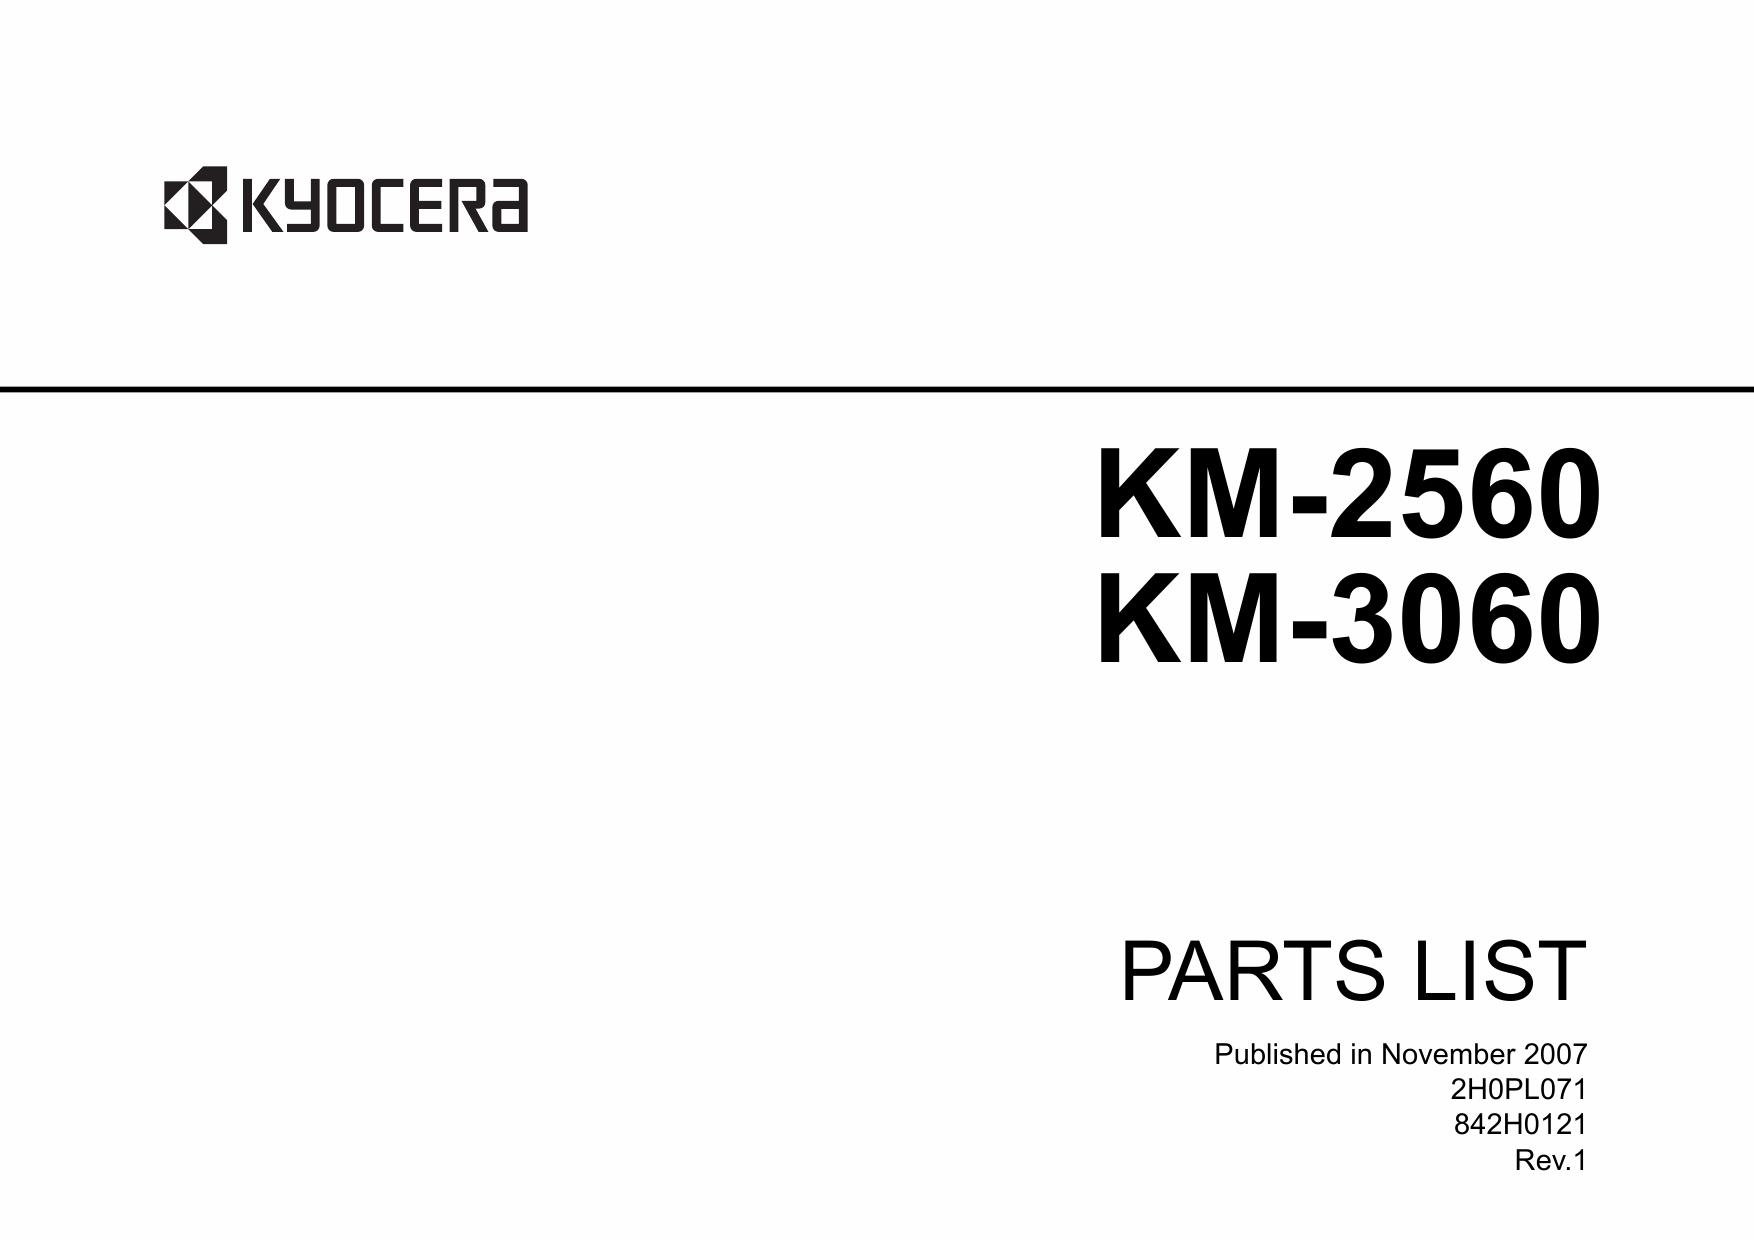 KYOCERA Copier KM-2560 3060 Parts Manual-1